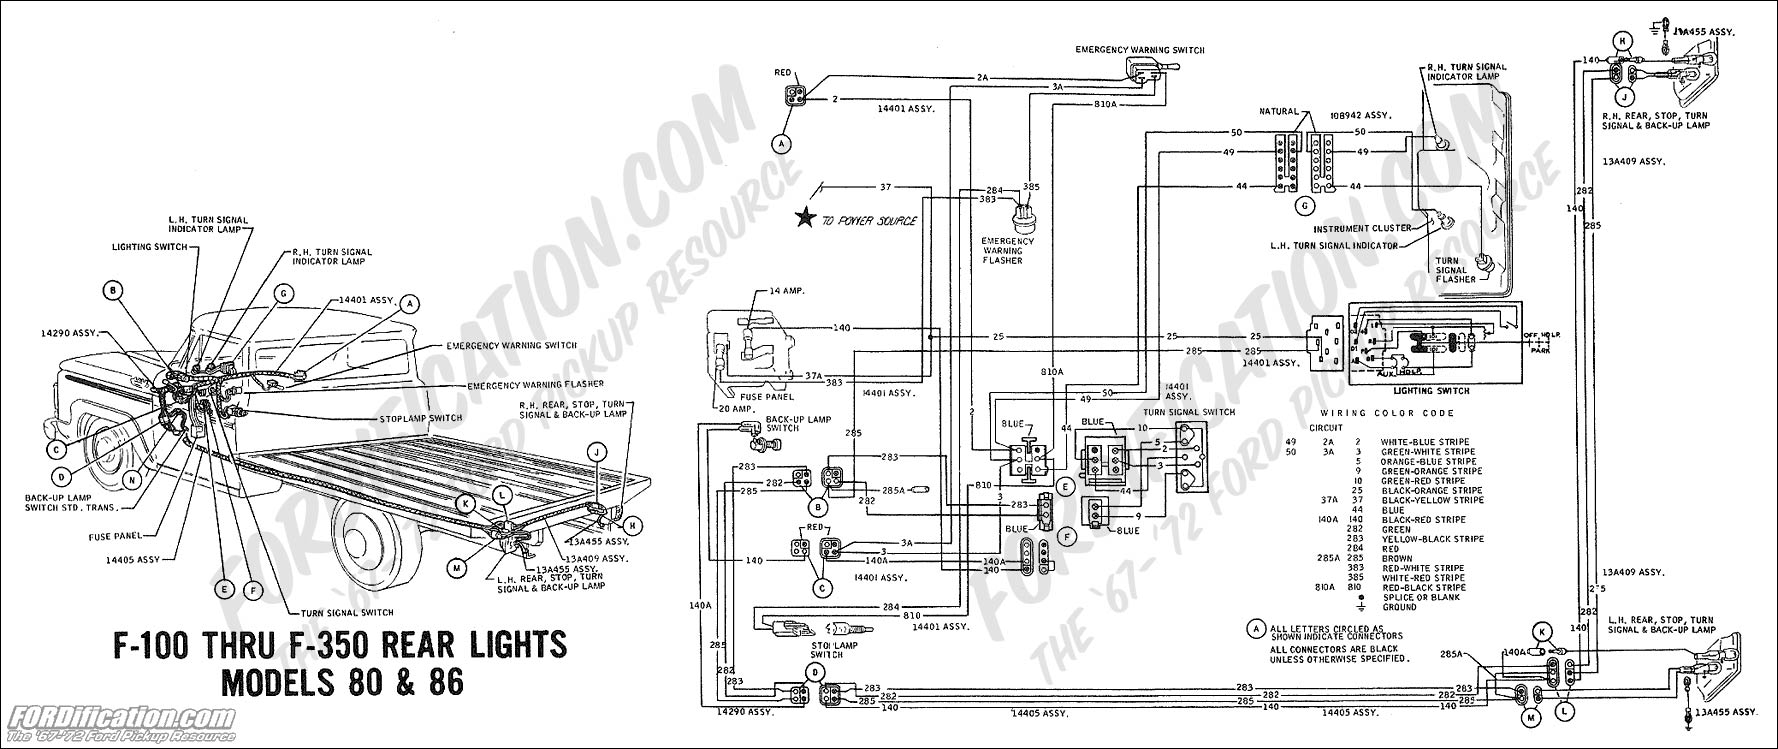 hight resolution of 1990 f700 wiring diagram wiring diagrams scematic 2008 2010 ford f 250 wiring harness